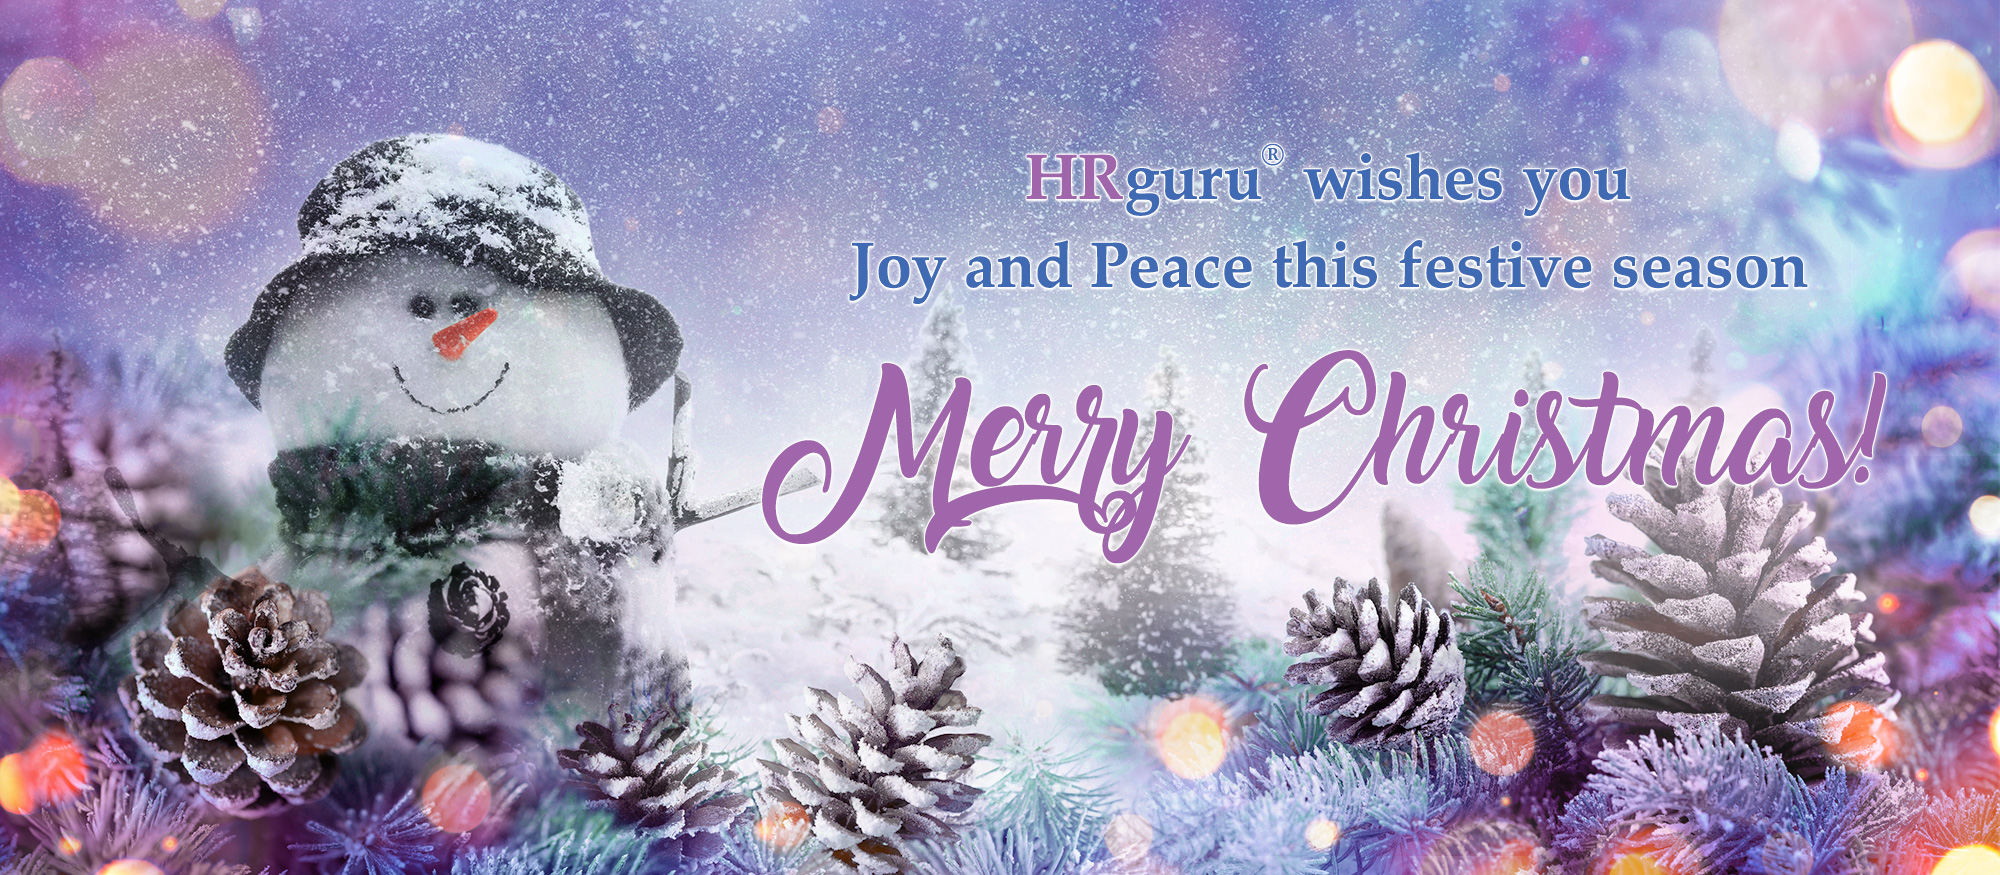 We wish you Joy and Peace this Festive Season. Merry Christmas!